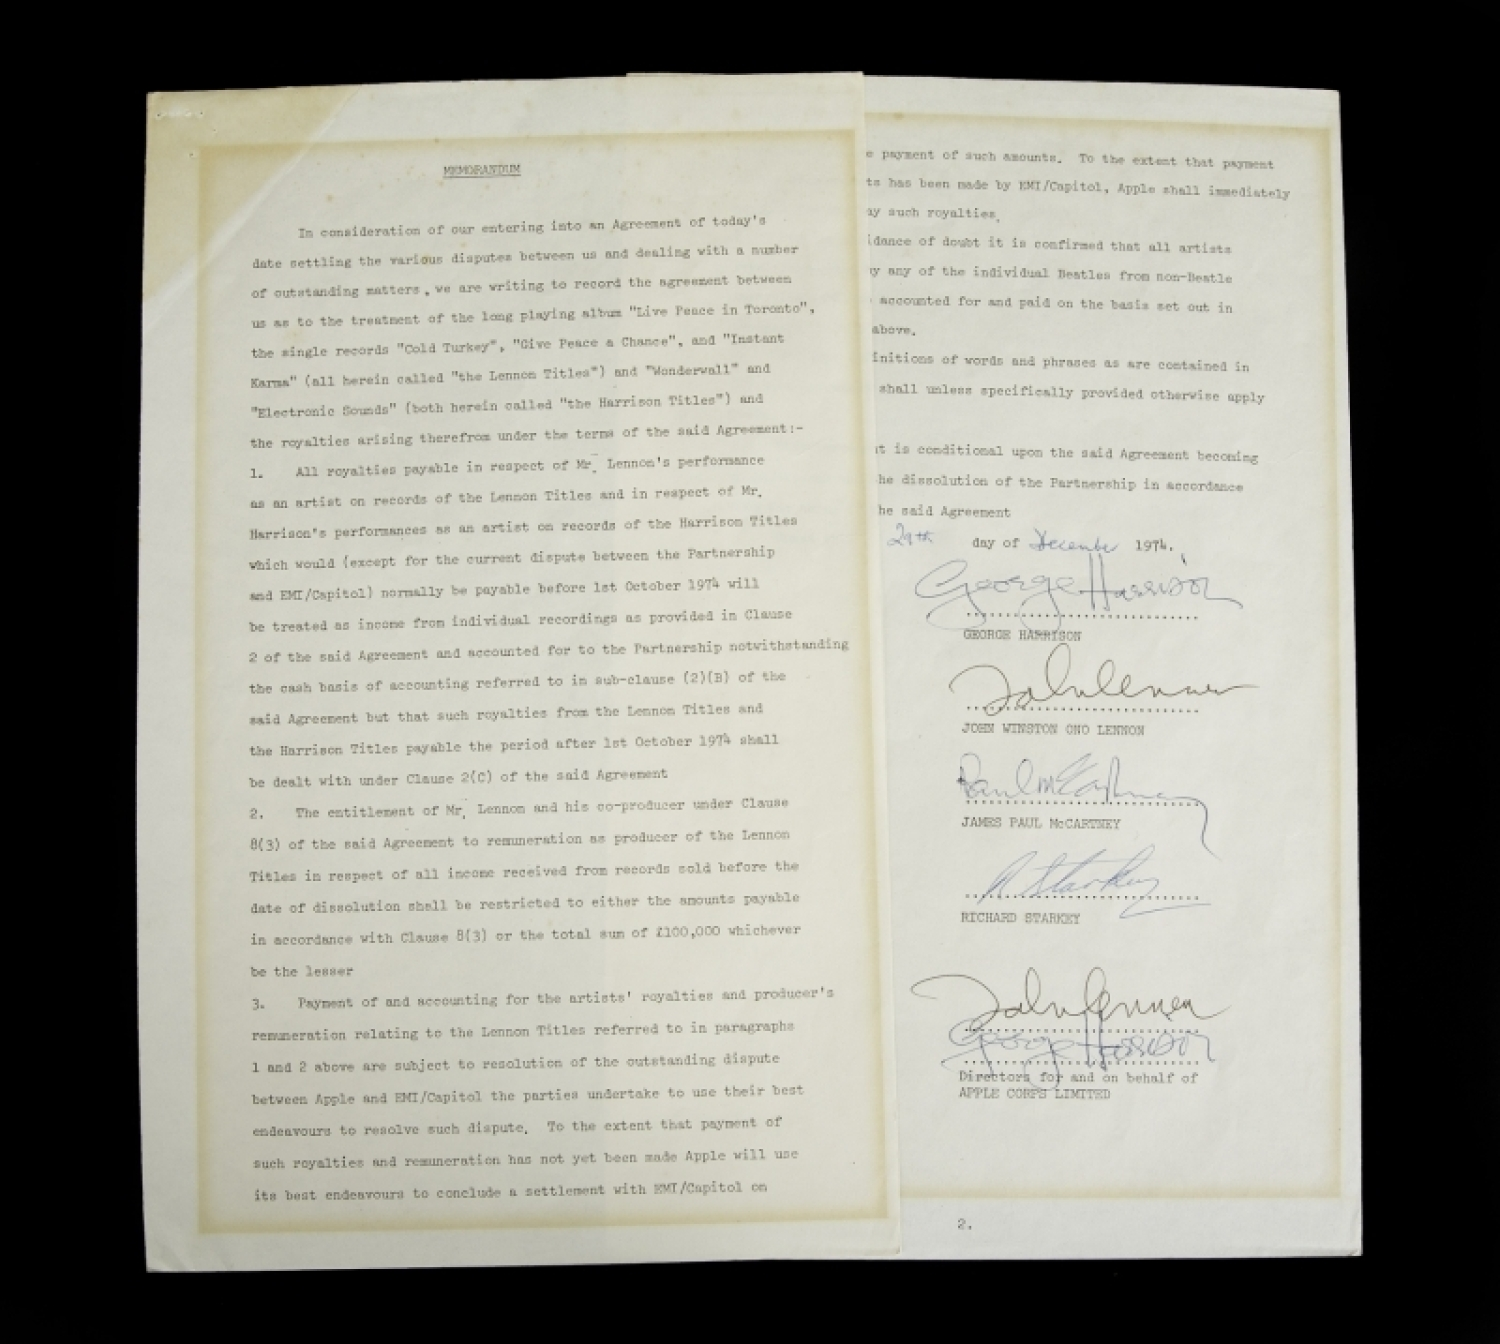 The Beatles Signed Dissolution Agreement • - Current Price: $47500